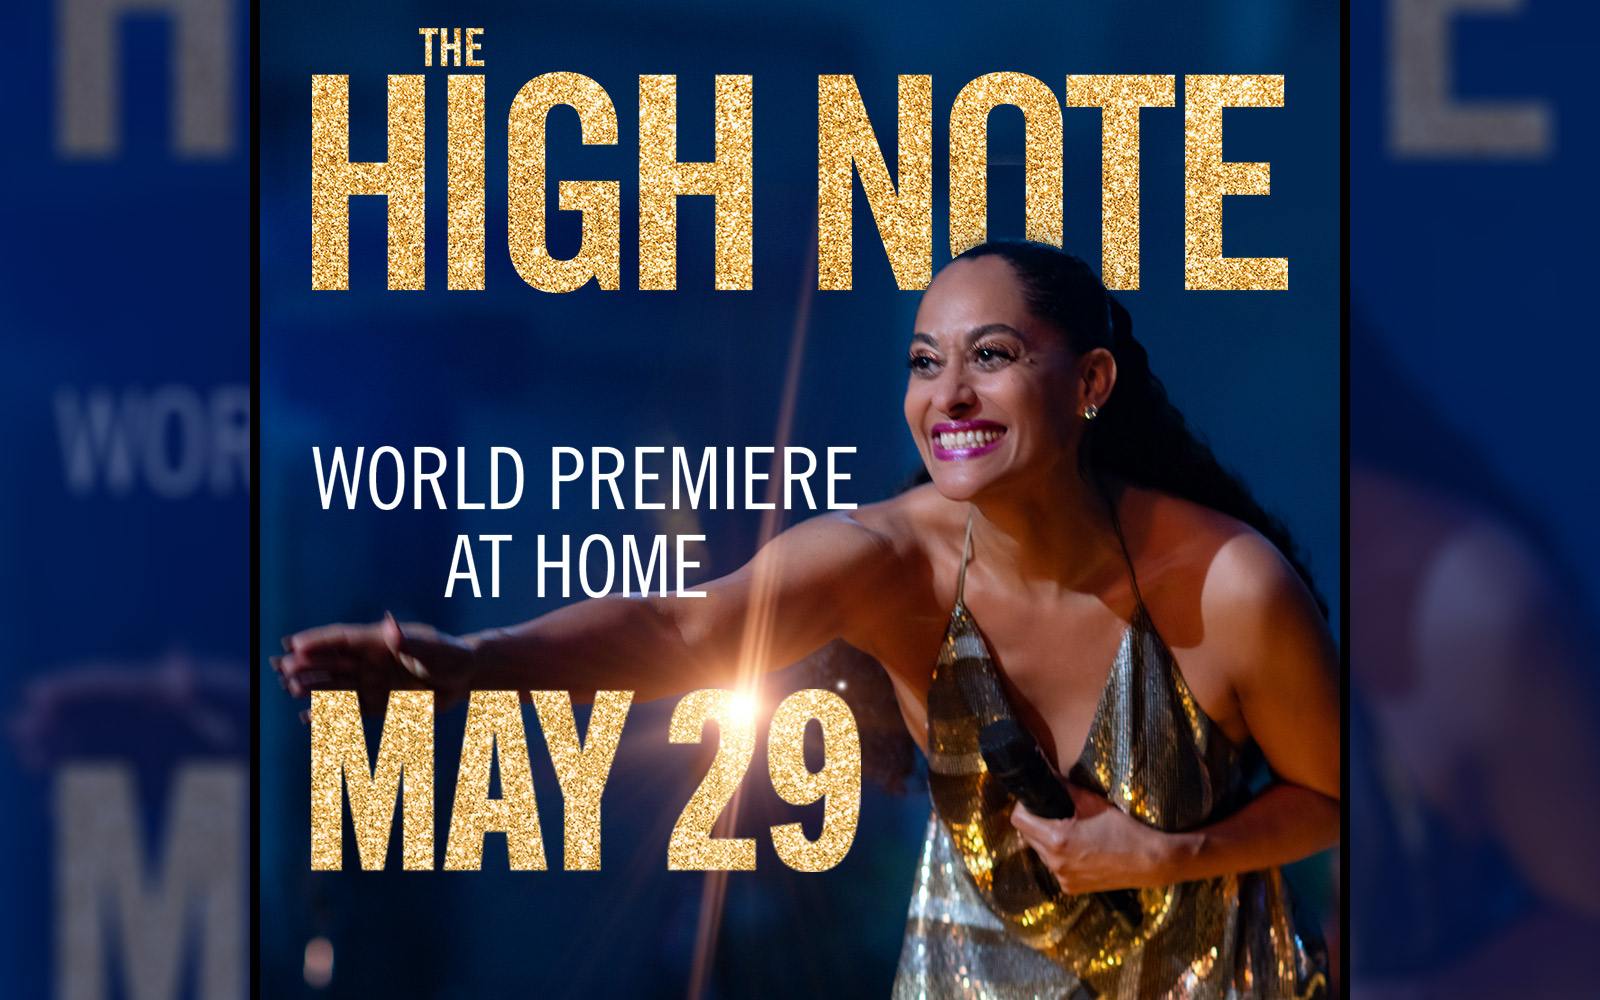 The High Note Review